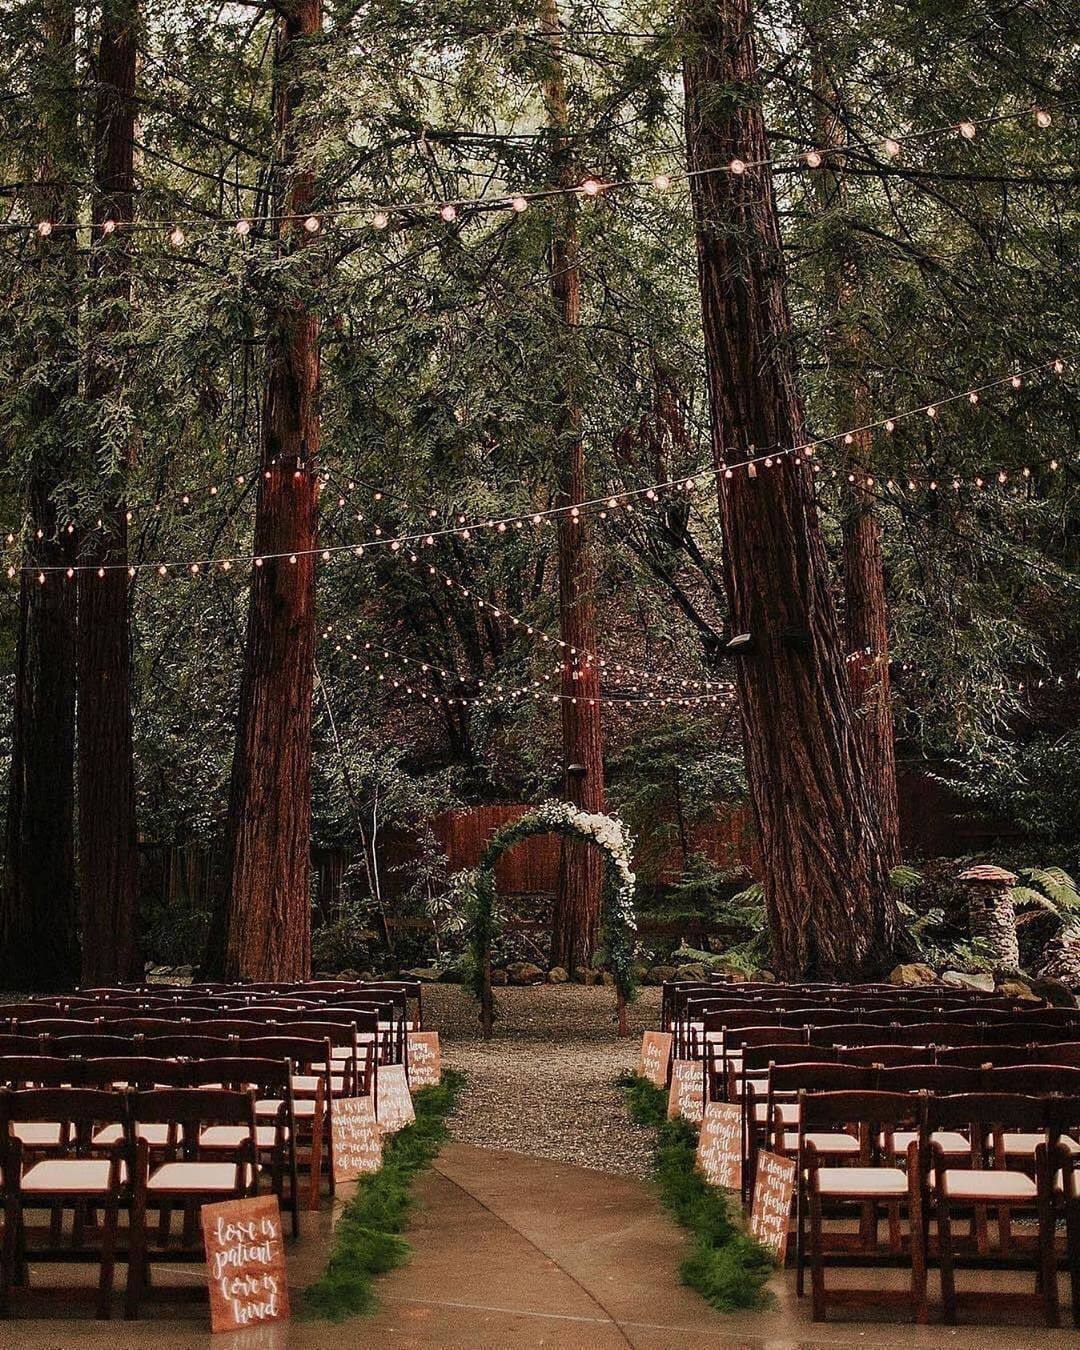 """MyDomaine on Instagram: """"Outdoor reception goals. Would you ever opt for a woodland wedding? Let us know down below! ✨📸: @victoriacarlsonphoto...#goals #instagram #mydomaine #opt #outdoor #reception #wedding #woodland #would"""